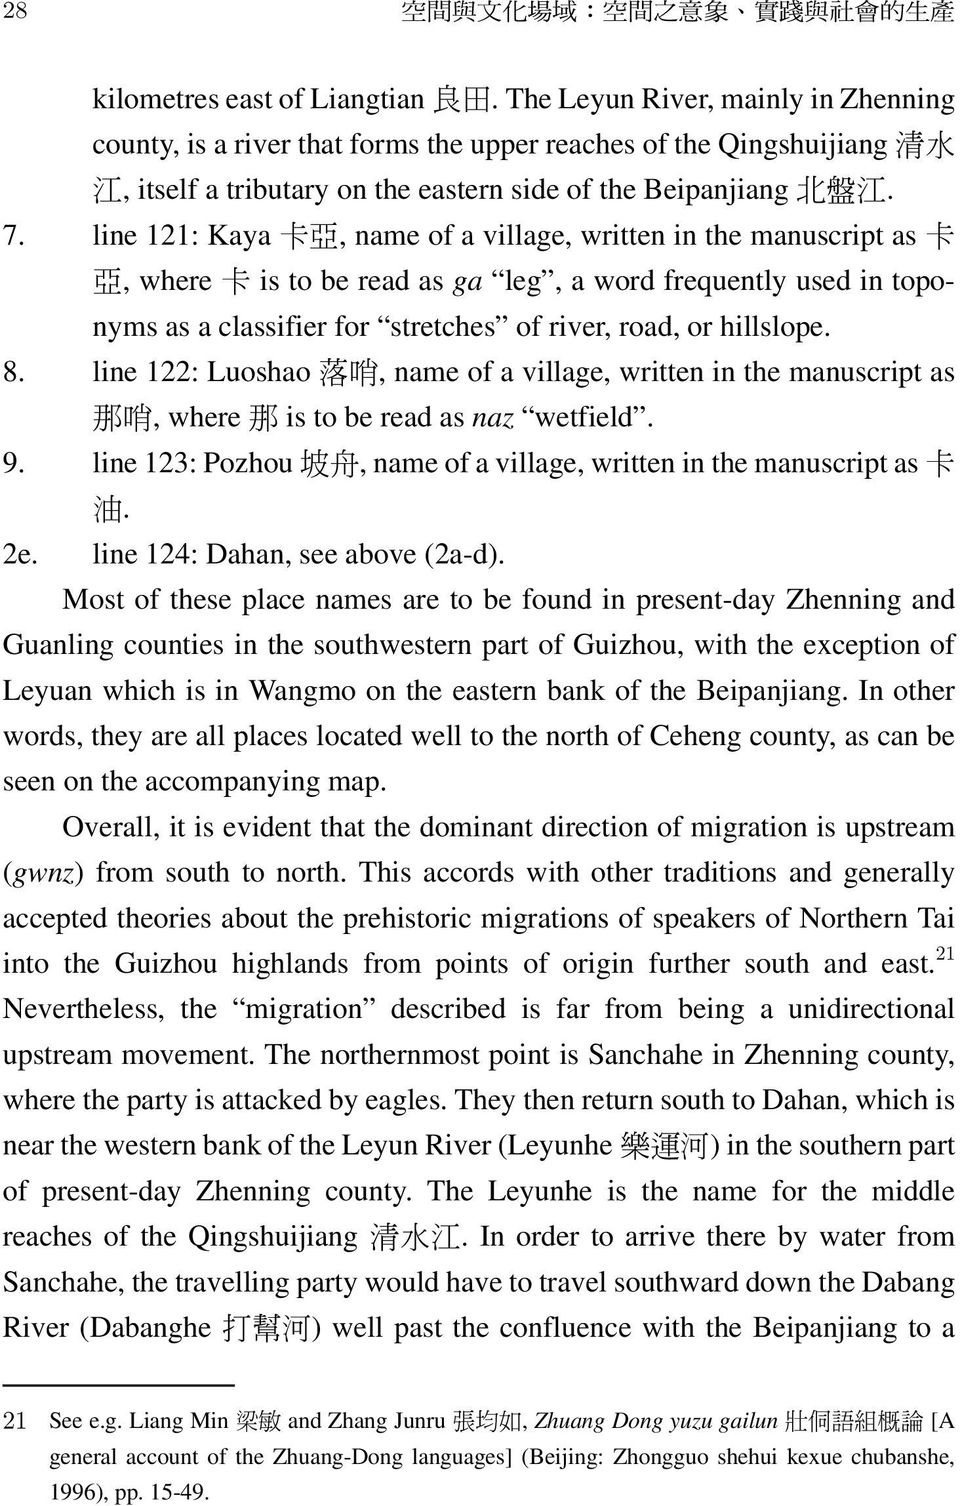 line 121: Kaya 卡 亞, name of a village, written in the manuscript as 卡 亞,where 卡 is to be read as ga leg, a word frequently used in toponyms as a classifier for stretches of river, road, or hillslope.